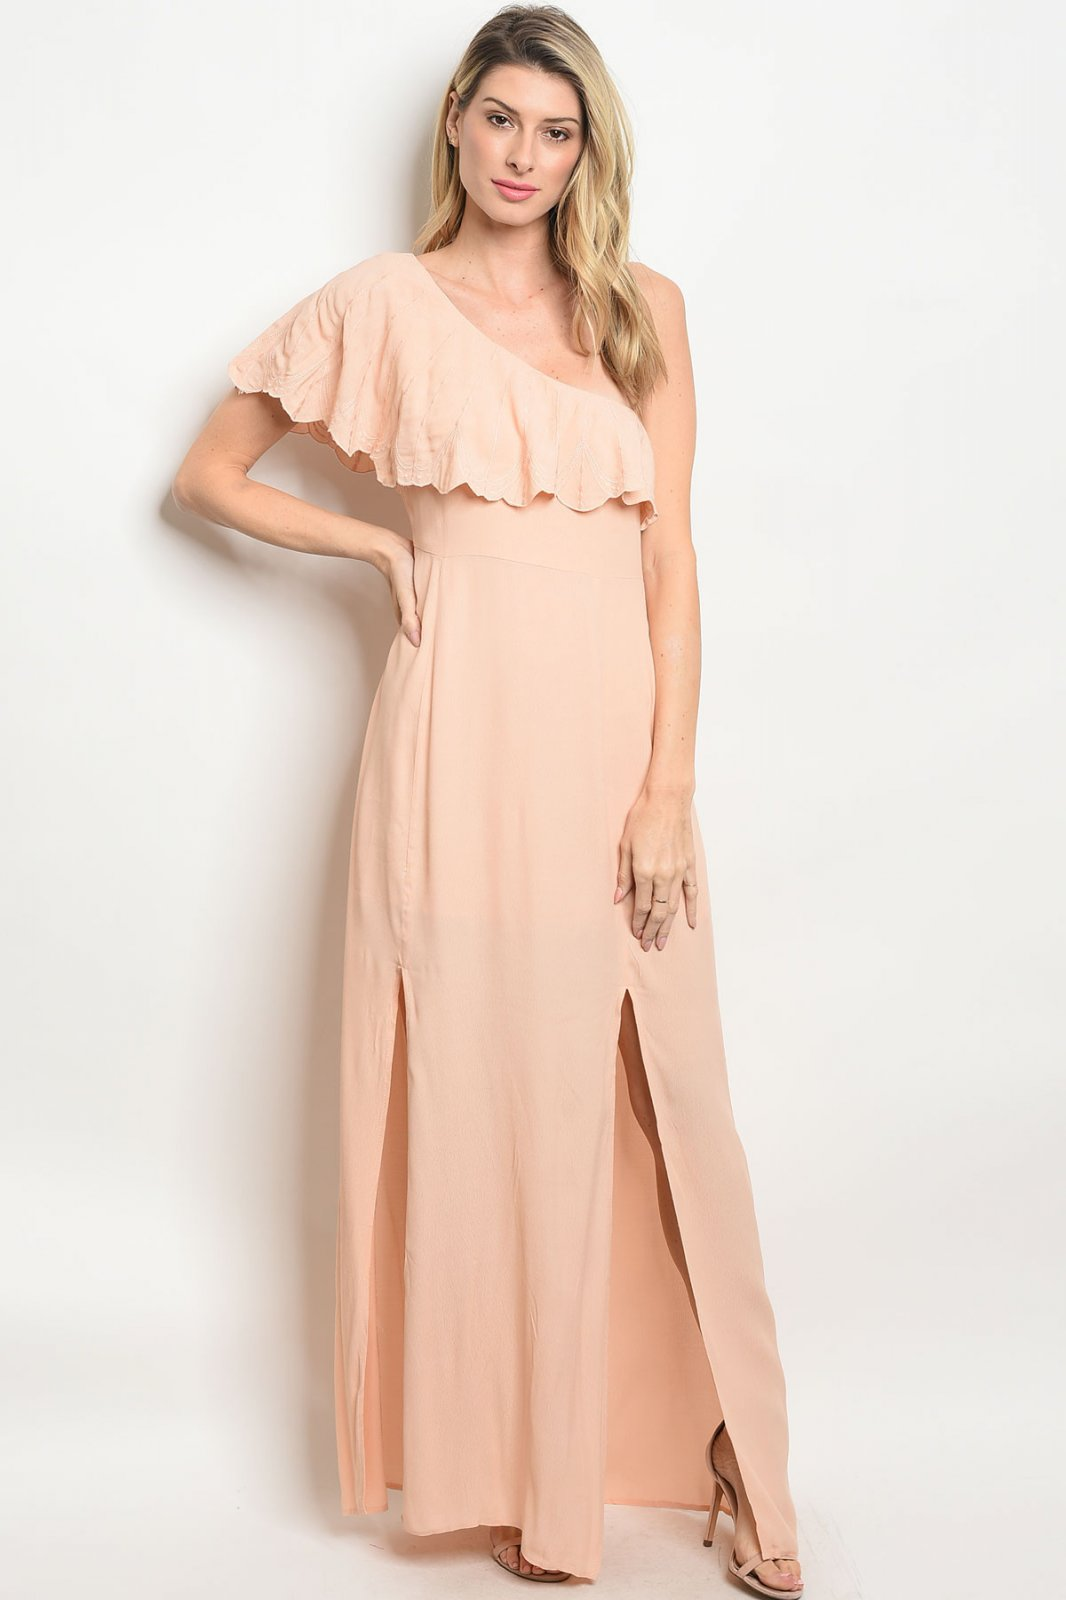 Blush One Shoulder Ruffle Maxi Dress.